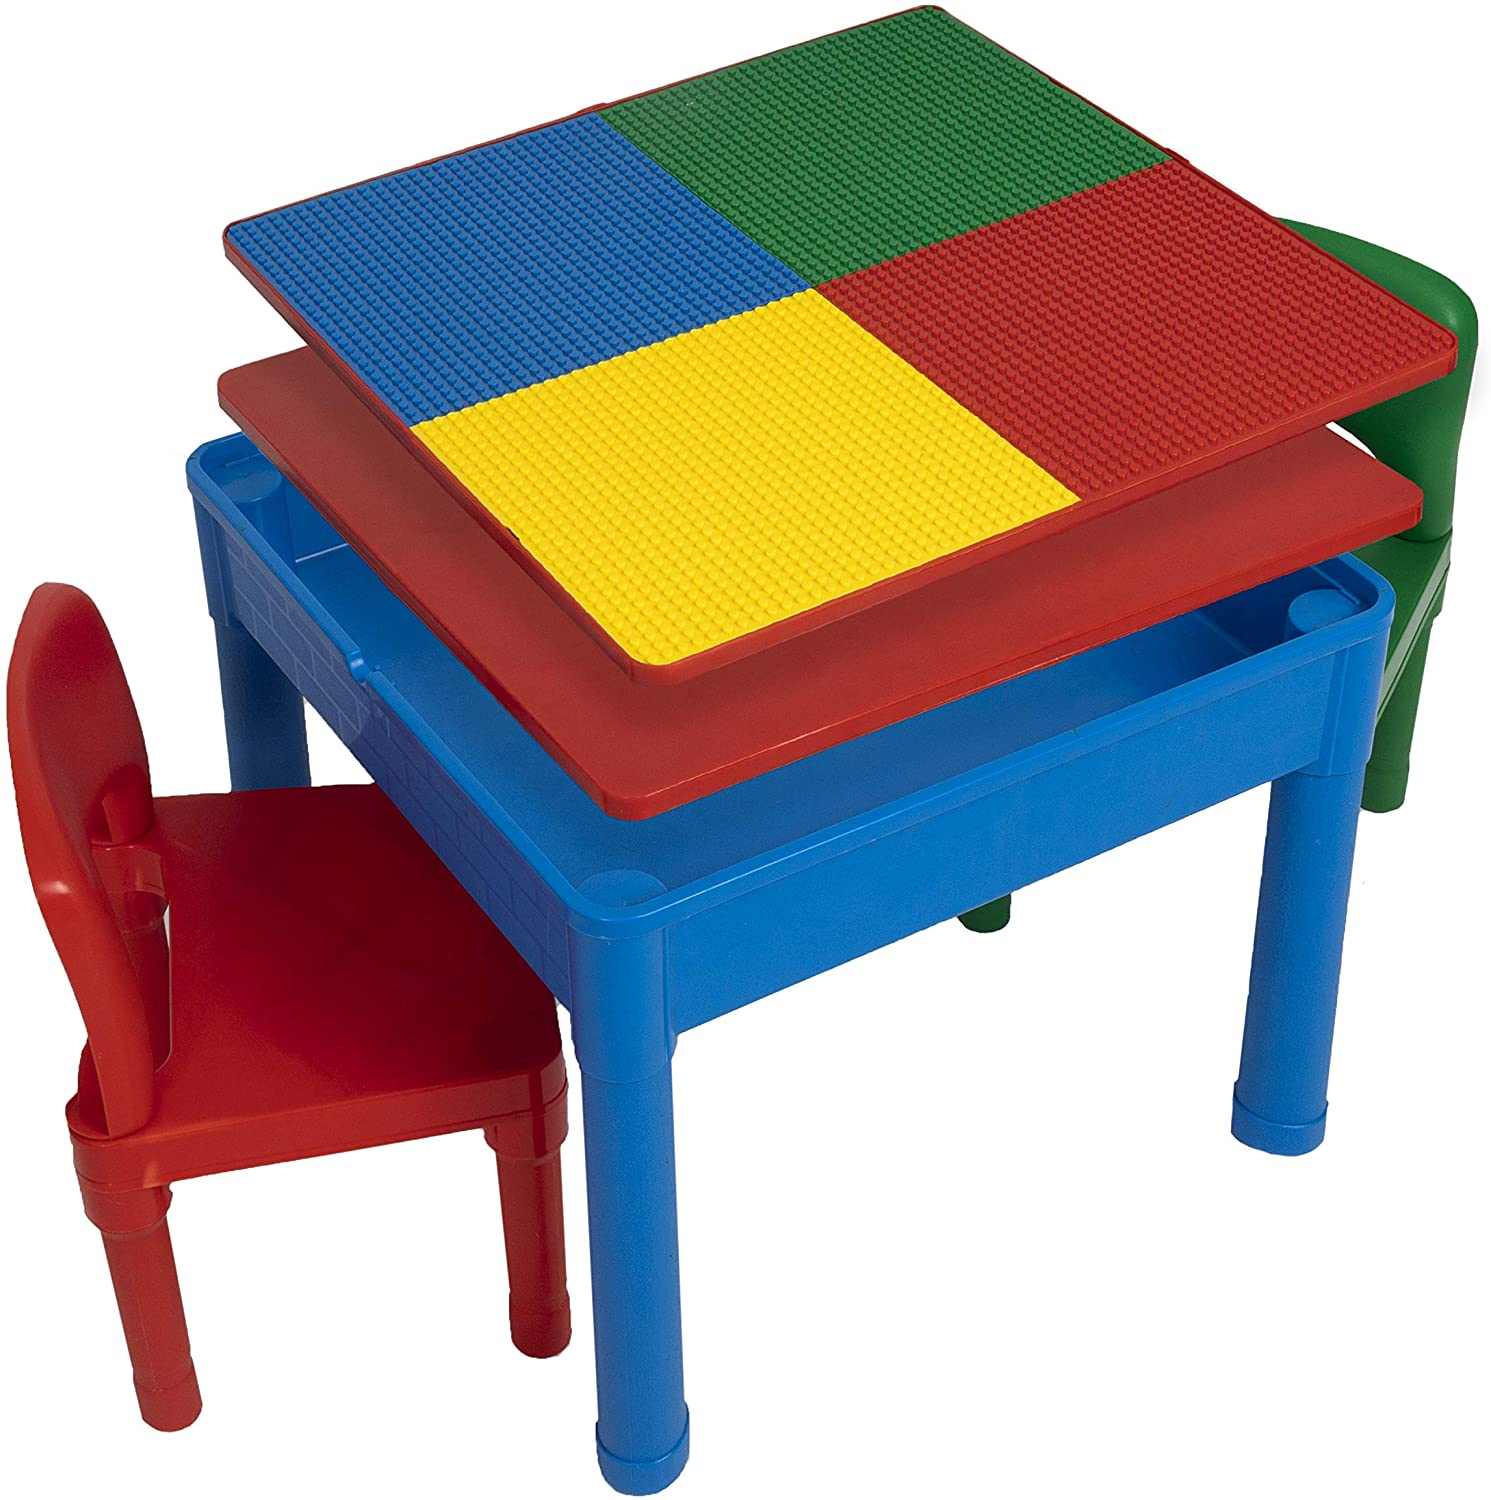 Play Platoon Kids Lego Tables with Storage - 5 in 1 Water Table